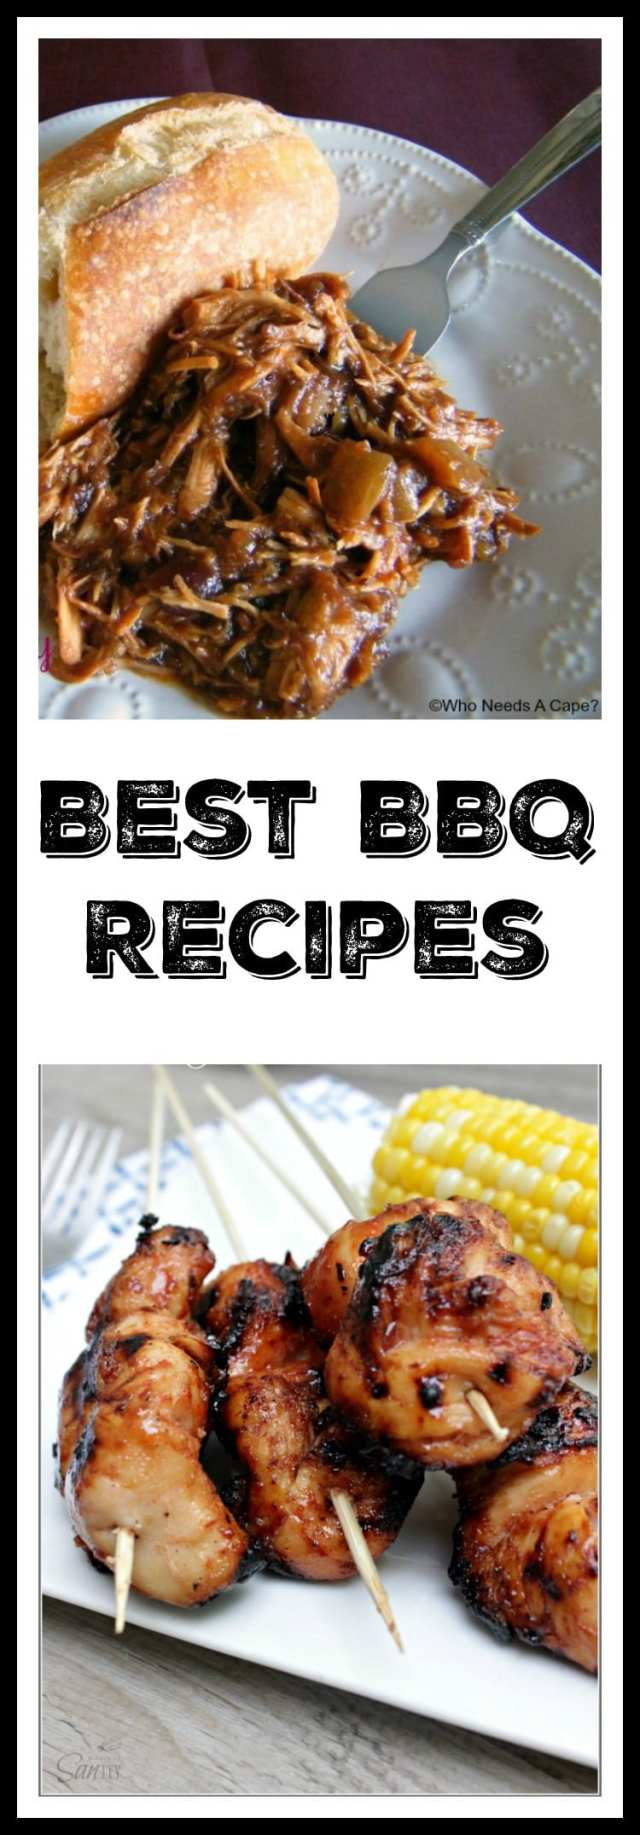 Are your looking for delicious BBQ recipes? We put together a tasty roundup of Best BBQ recipes from our favorite food bloggers. Extra napkins not included!